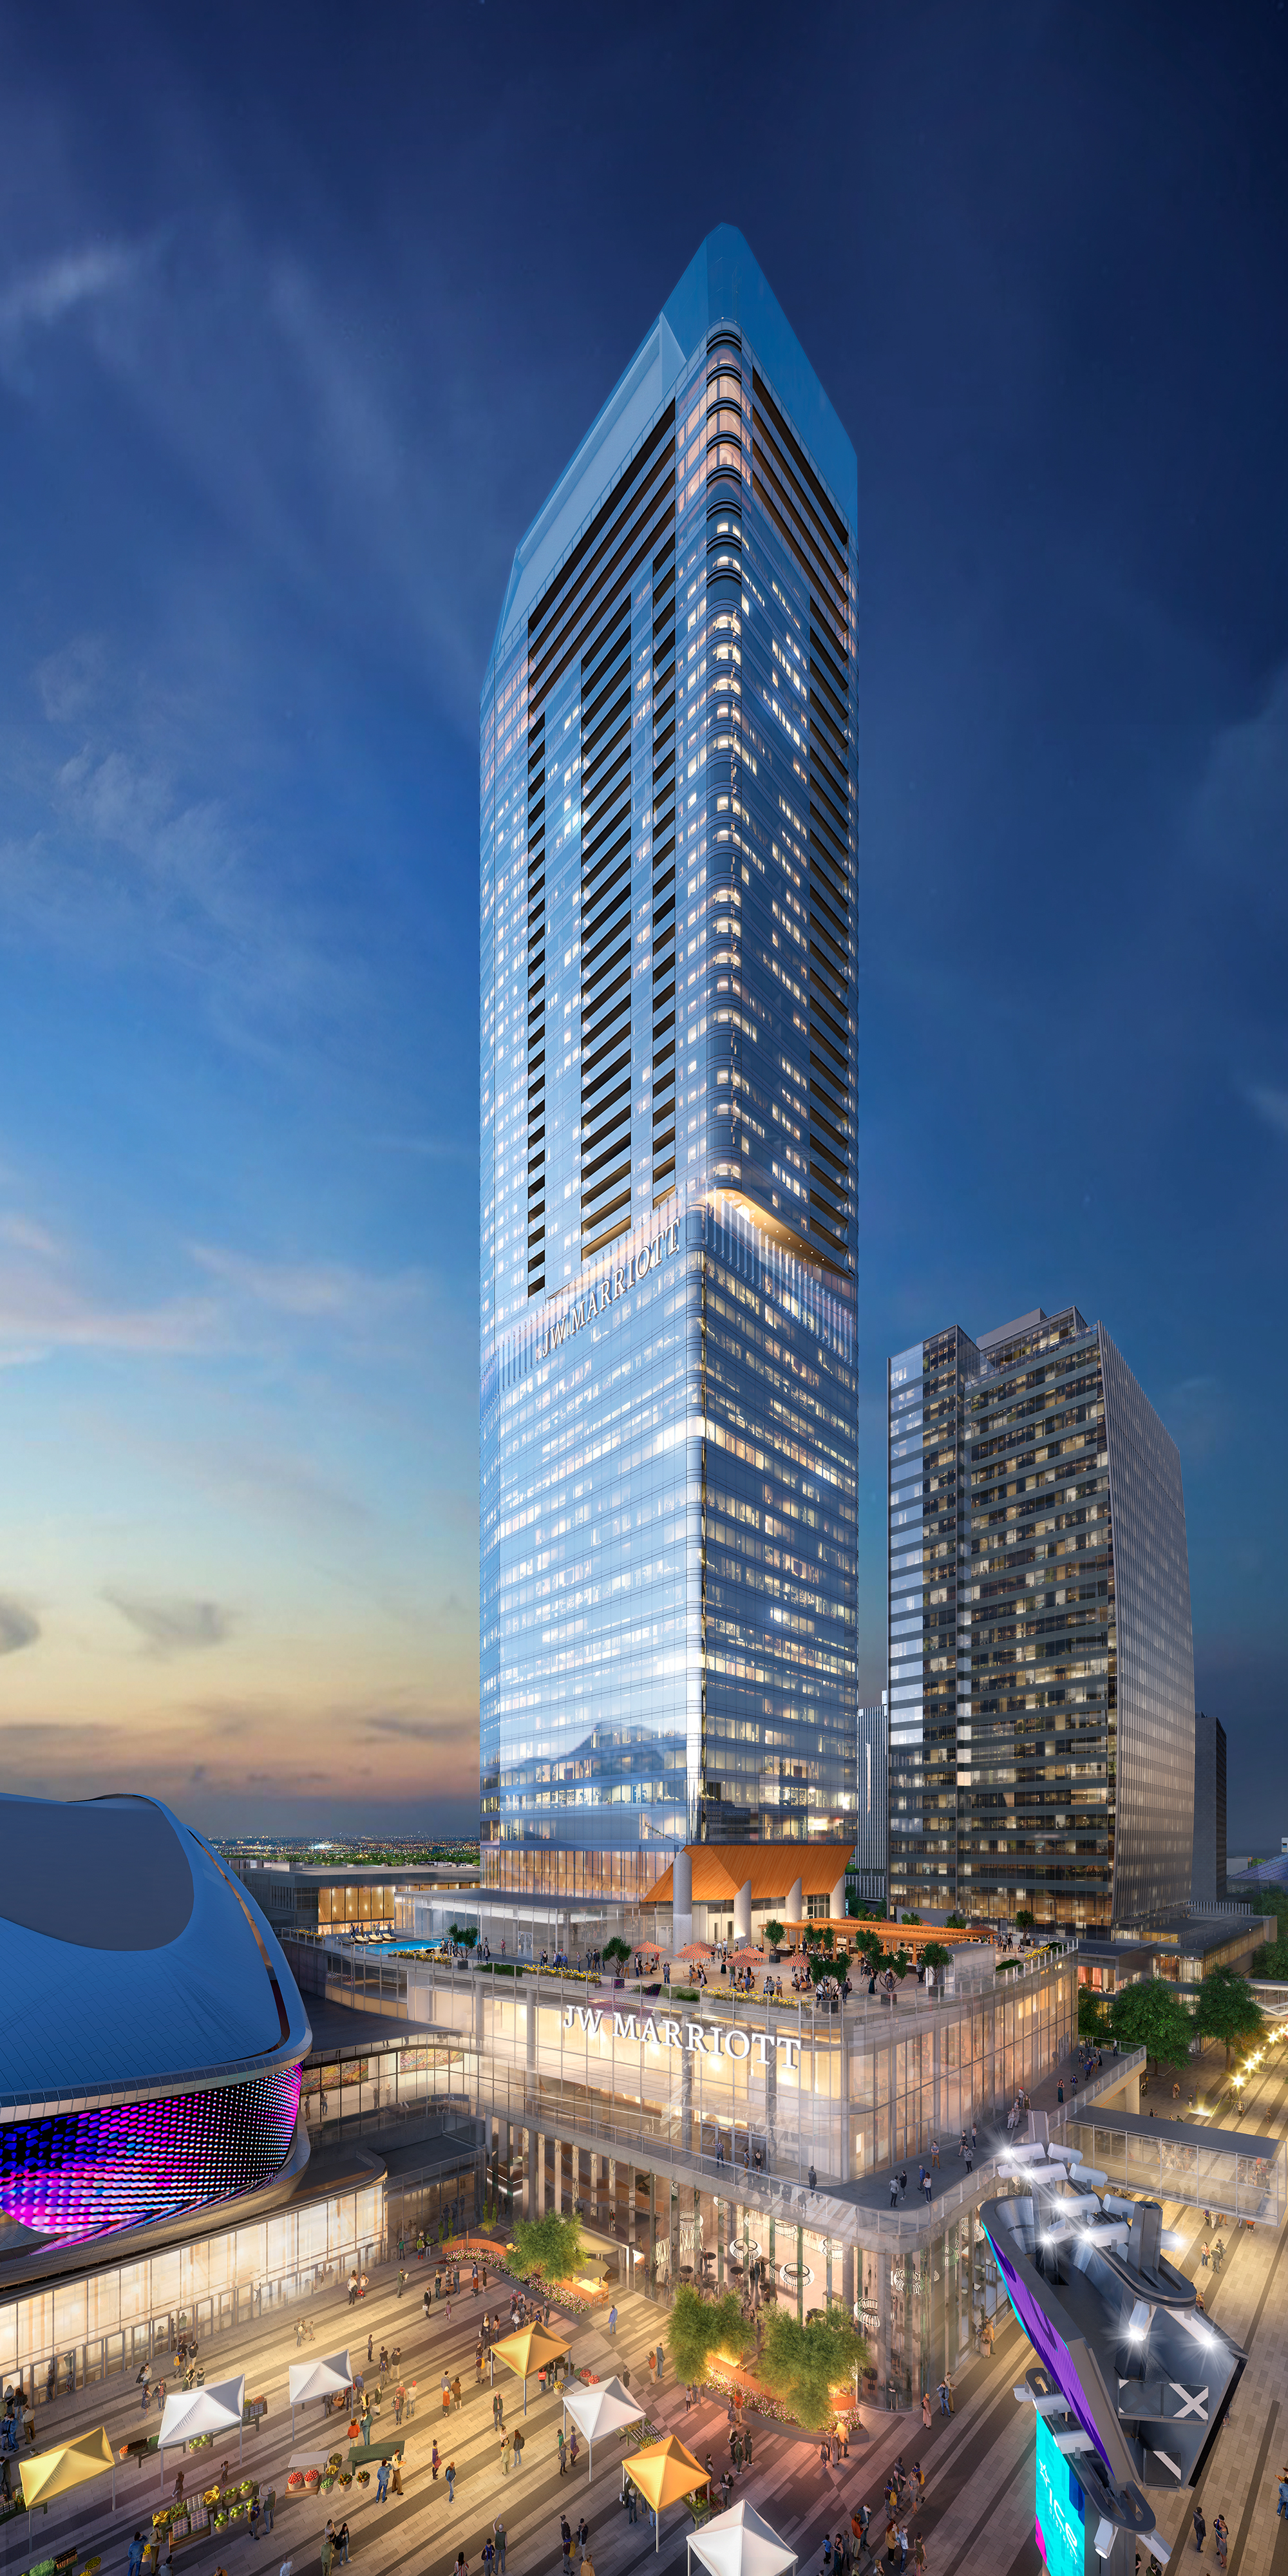 A rendering shows what Edmonton's Stantec tower will look like when complete next year. The 69-storey tower is now partially open.